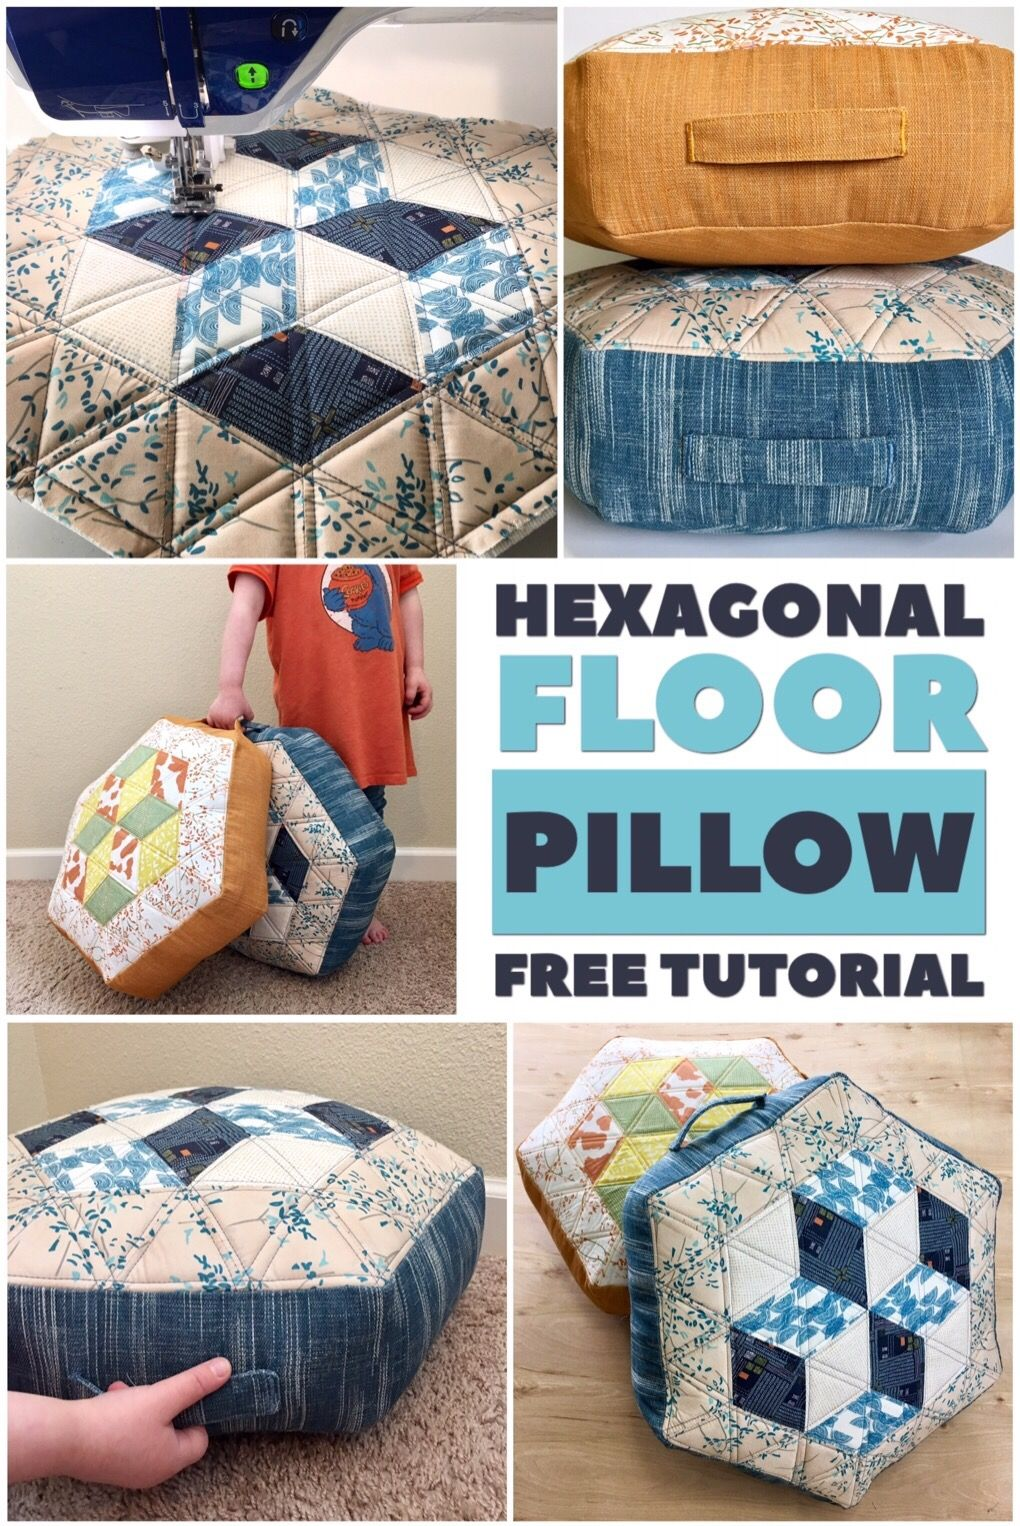 Hexagonal Floor Pillow - free tutorial. Sewing. Quilting. | PILLOWS ...